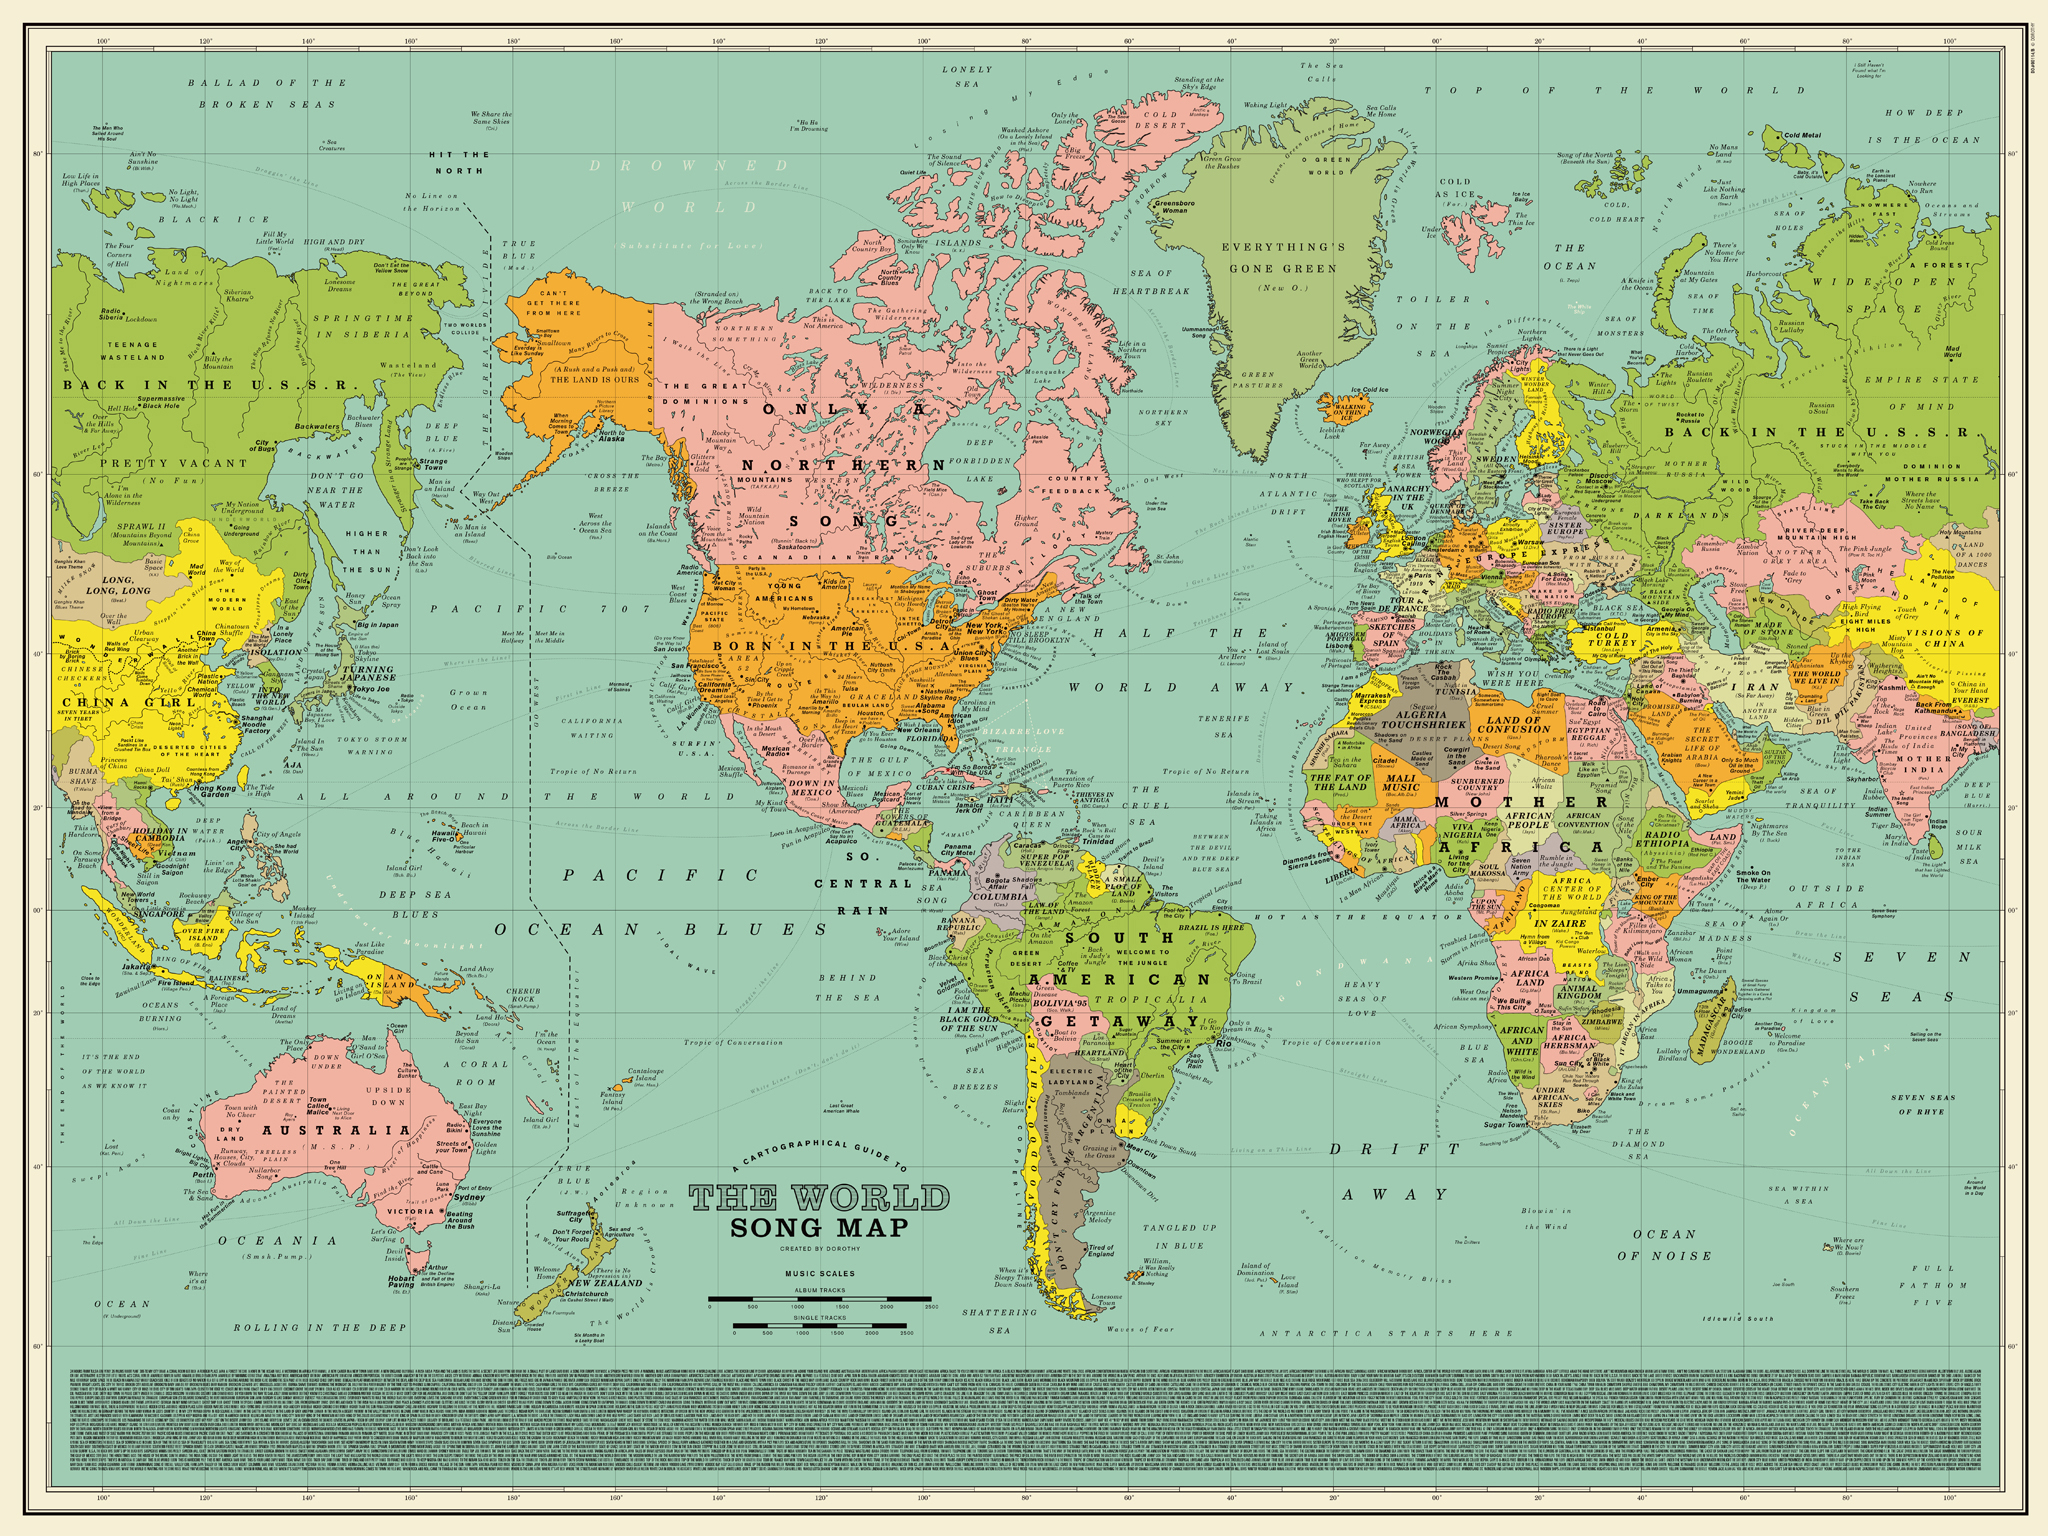 World Song Map A Detailed Poster That Imagines The World Map Made - Map of the world